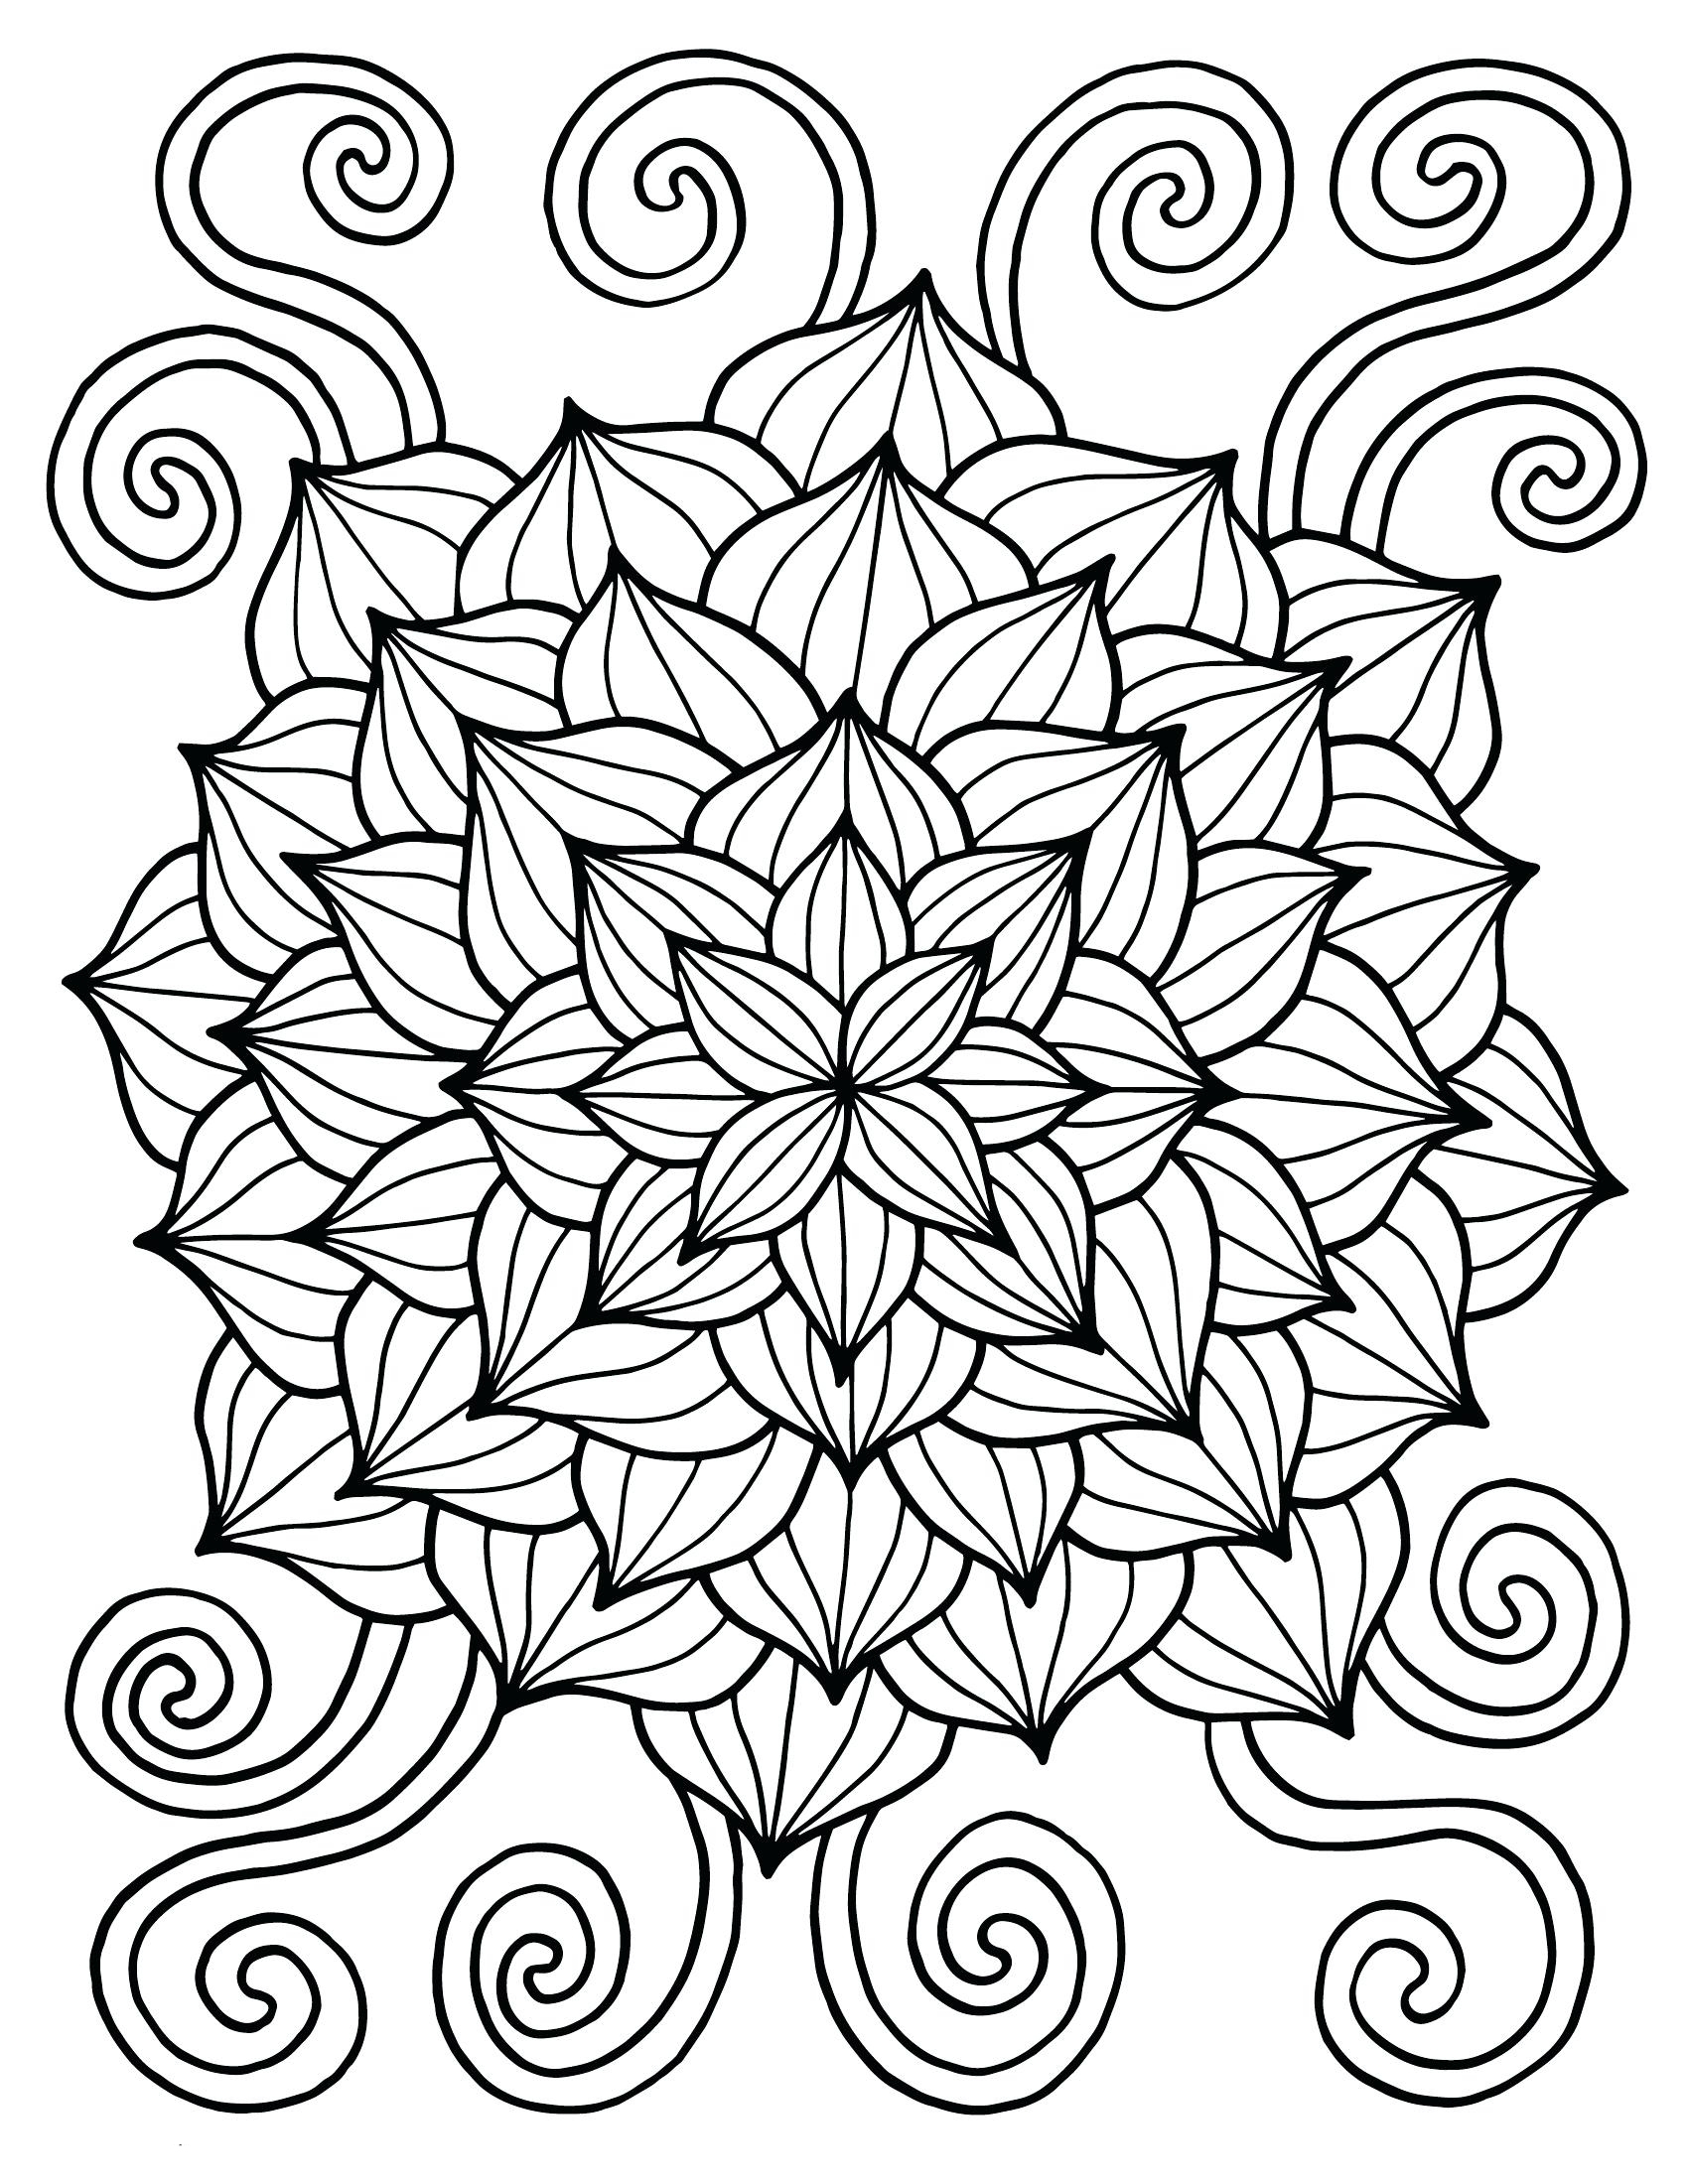 Spring Coloring Pages - Best Coloring Pages For Kids | free printable coloring pages for adults only flowers